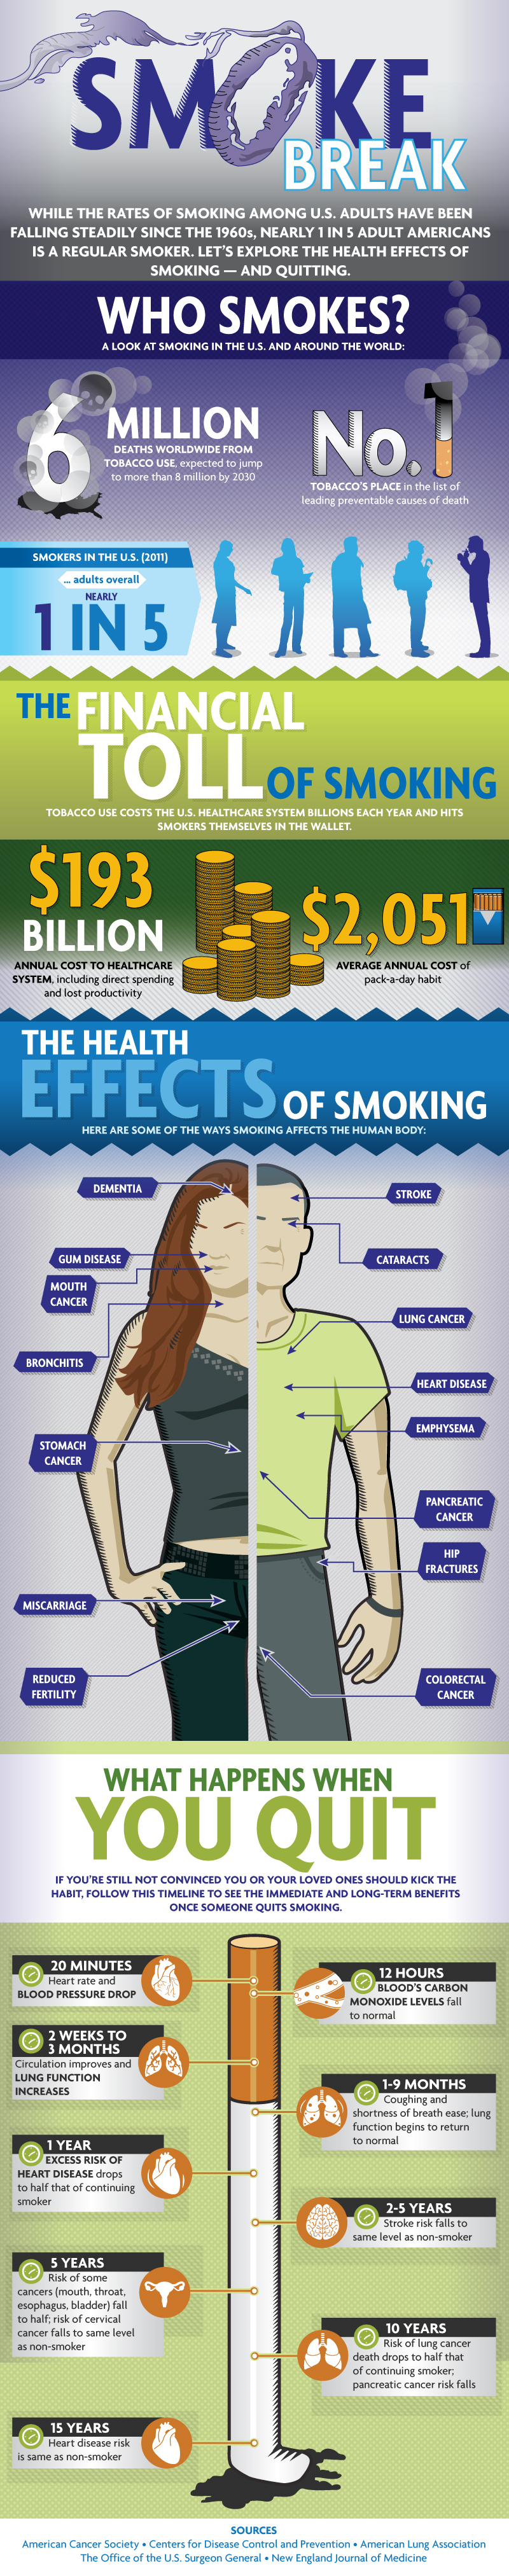 Smoke Break Infographic While the rates of smoking among US adults have been falling steadily since the 1960s, nearly one in five adult Americans is a regular smoker. This infographic explores the health effects of smoking, and quitting. For information on Health Dialog's population solutions, including our smoking cessation program and our new Enhanced Diabetes Management Program, please contact us. (Graphic: Business Wire)